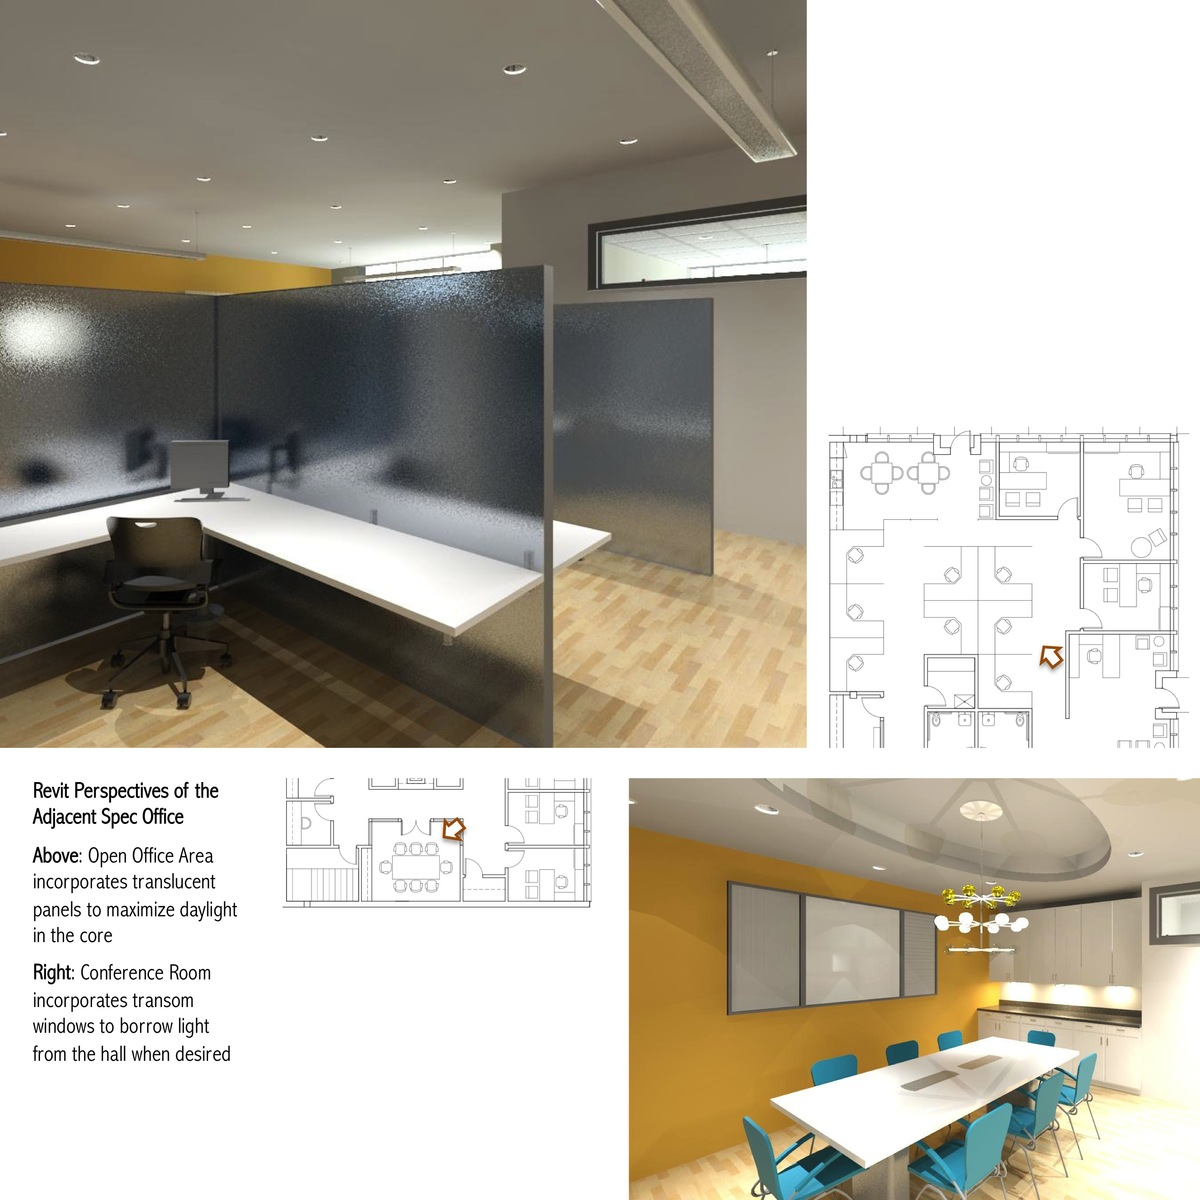 Interior perspectives of the adjacent speculative office, rendered in Revit